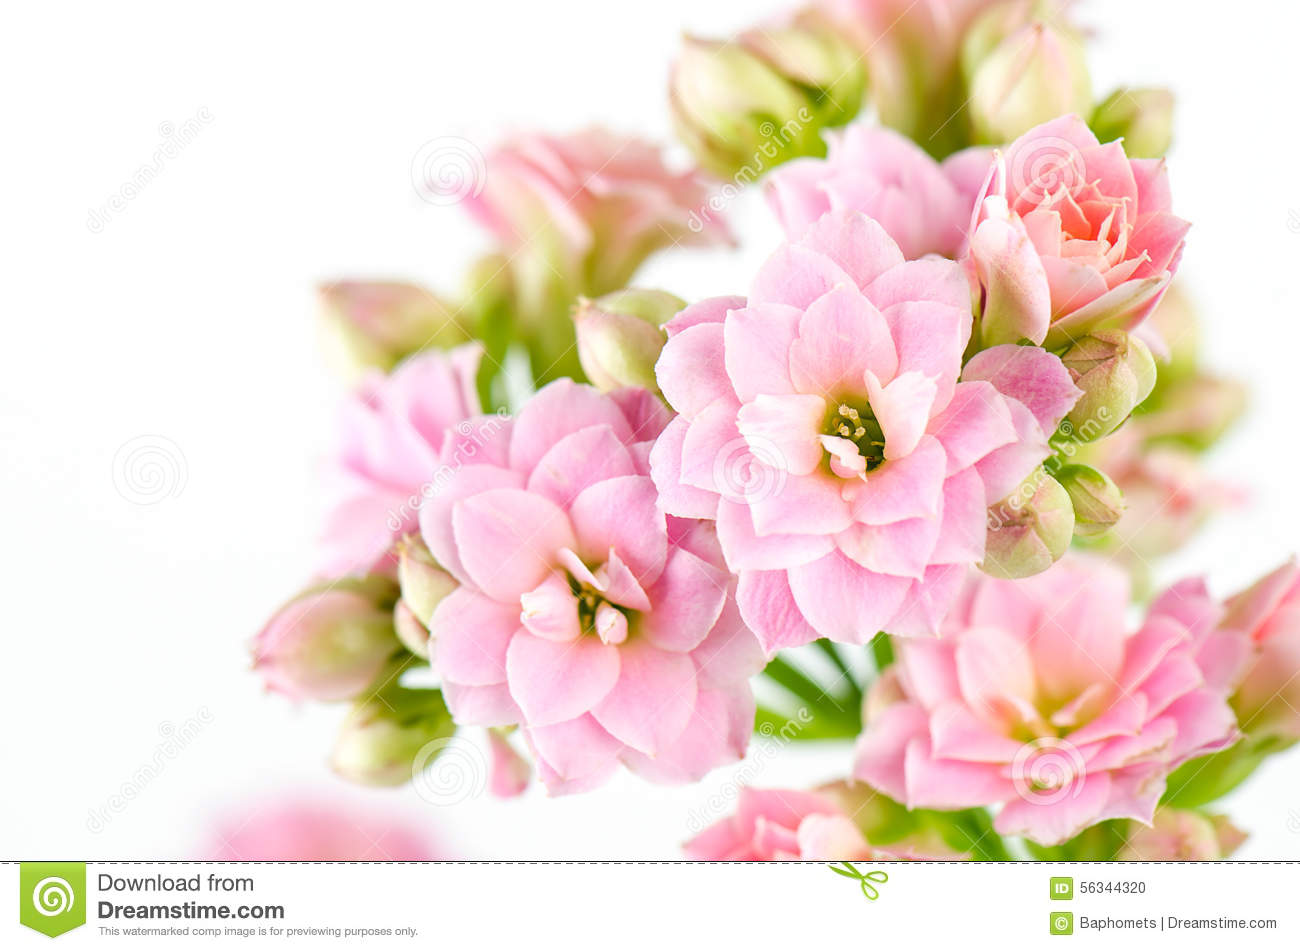 Pink flowers on white background, Kalanchoe blossfeldiana